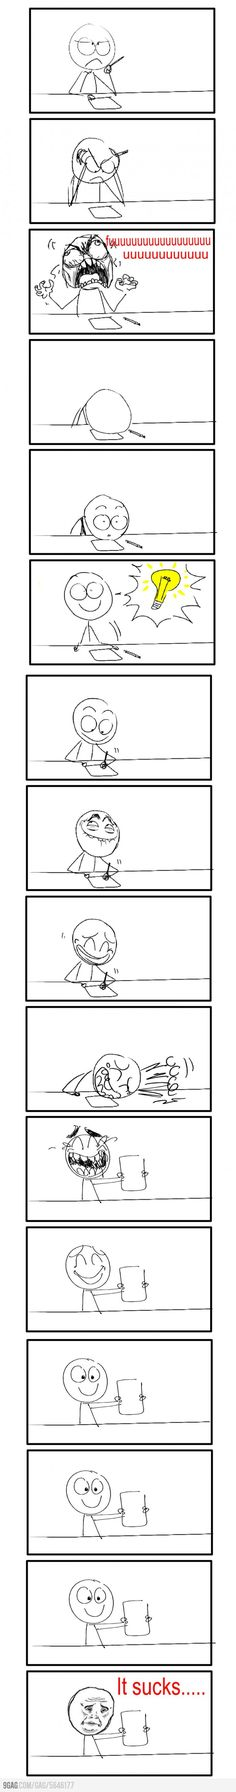 Everytime i write a plot or draw... or do anything with paper and a pen...